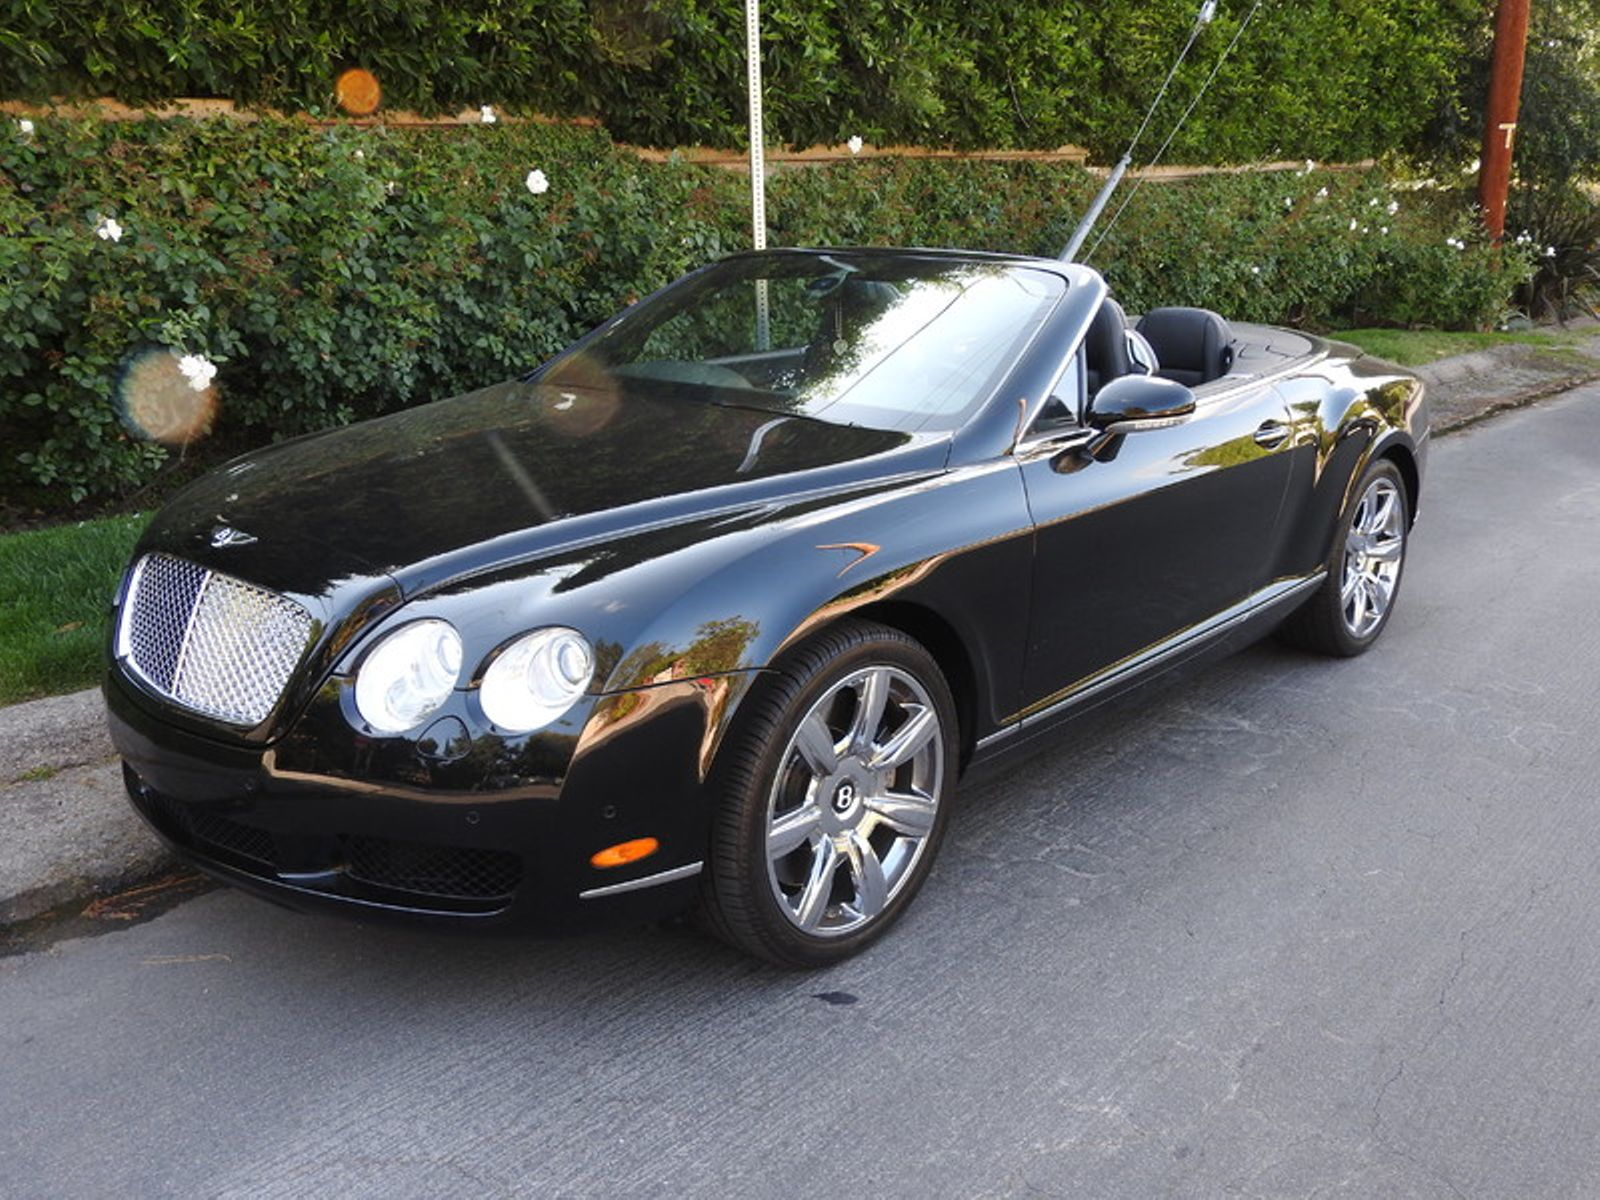 bentley new and gt review specs coupe price speed date convertible release